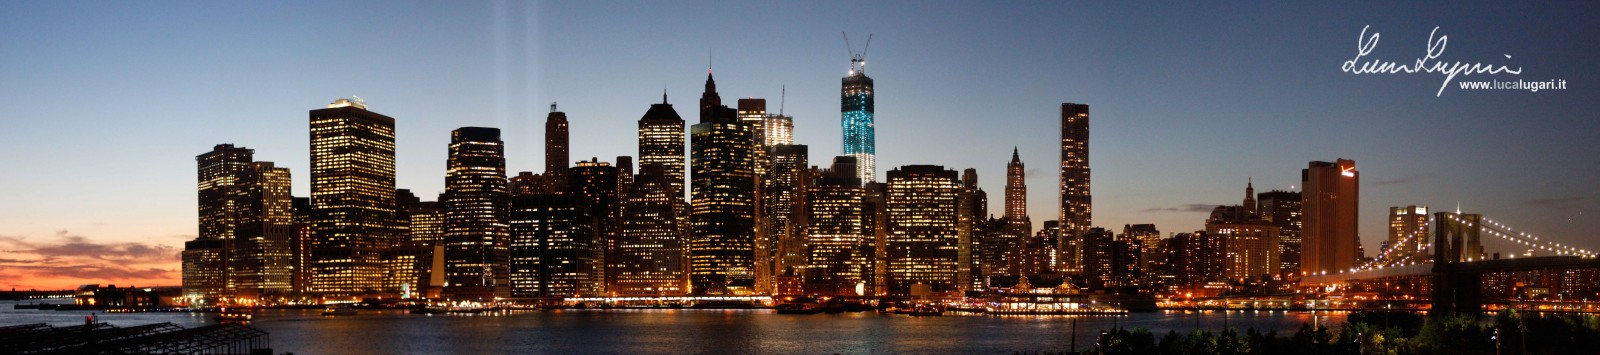 New York - Downtown Manhattan Skyline